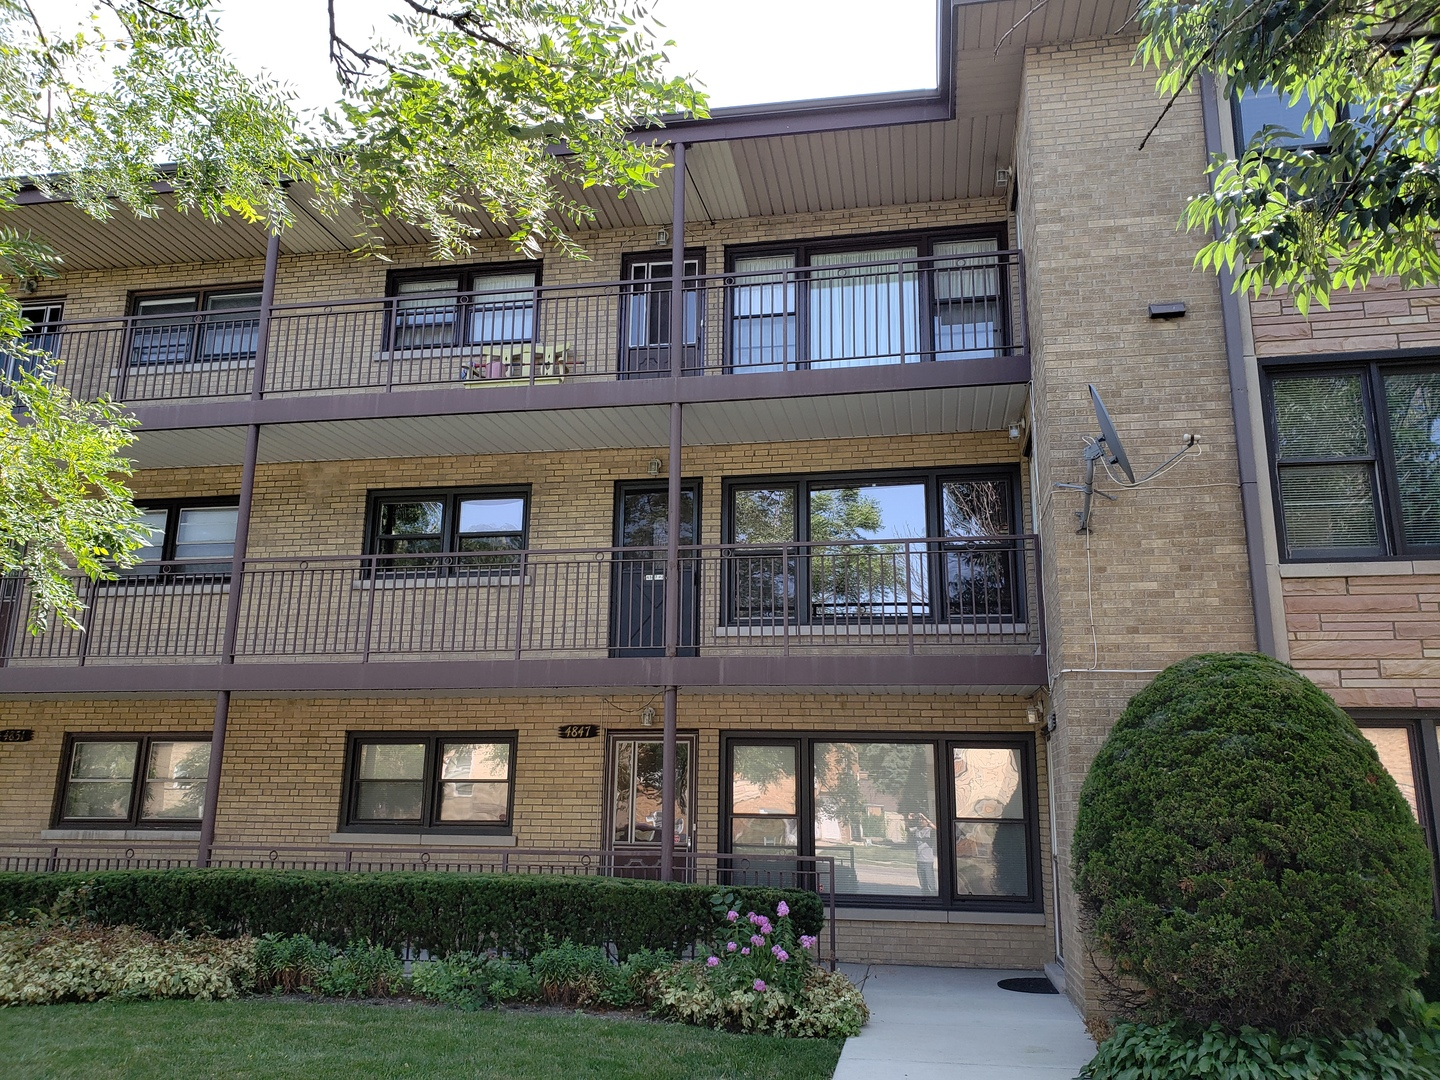 4847 Harlem Unit Unit 1 ,Chicago, Illinois 60656